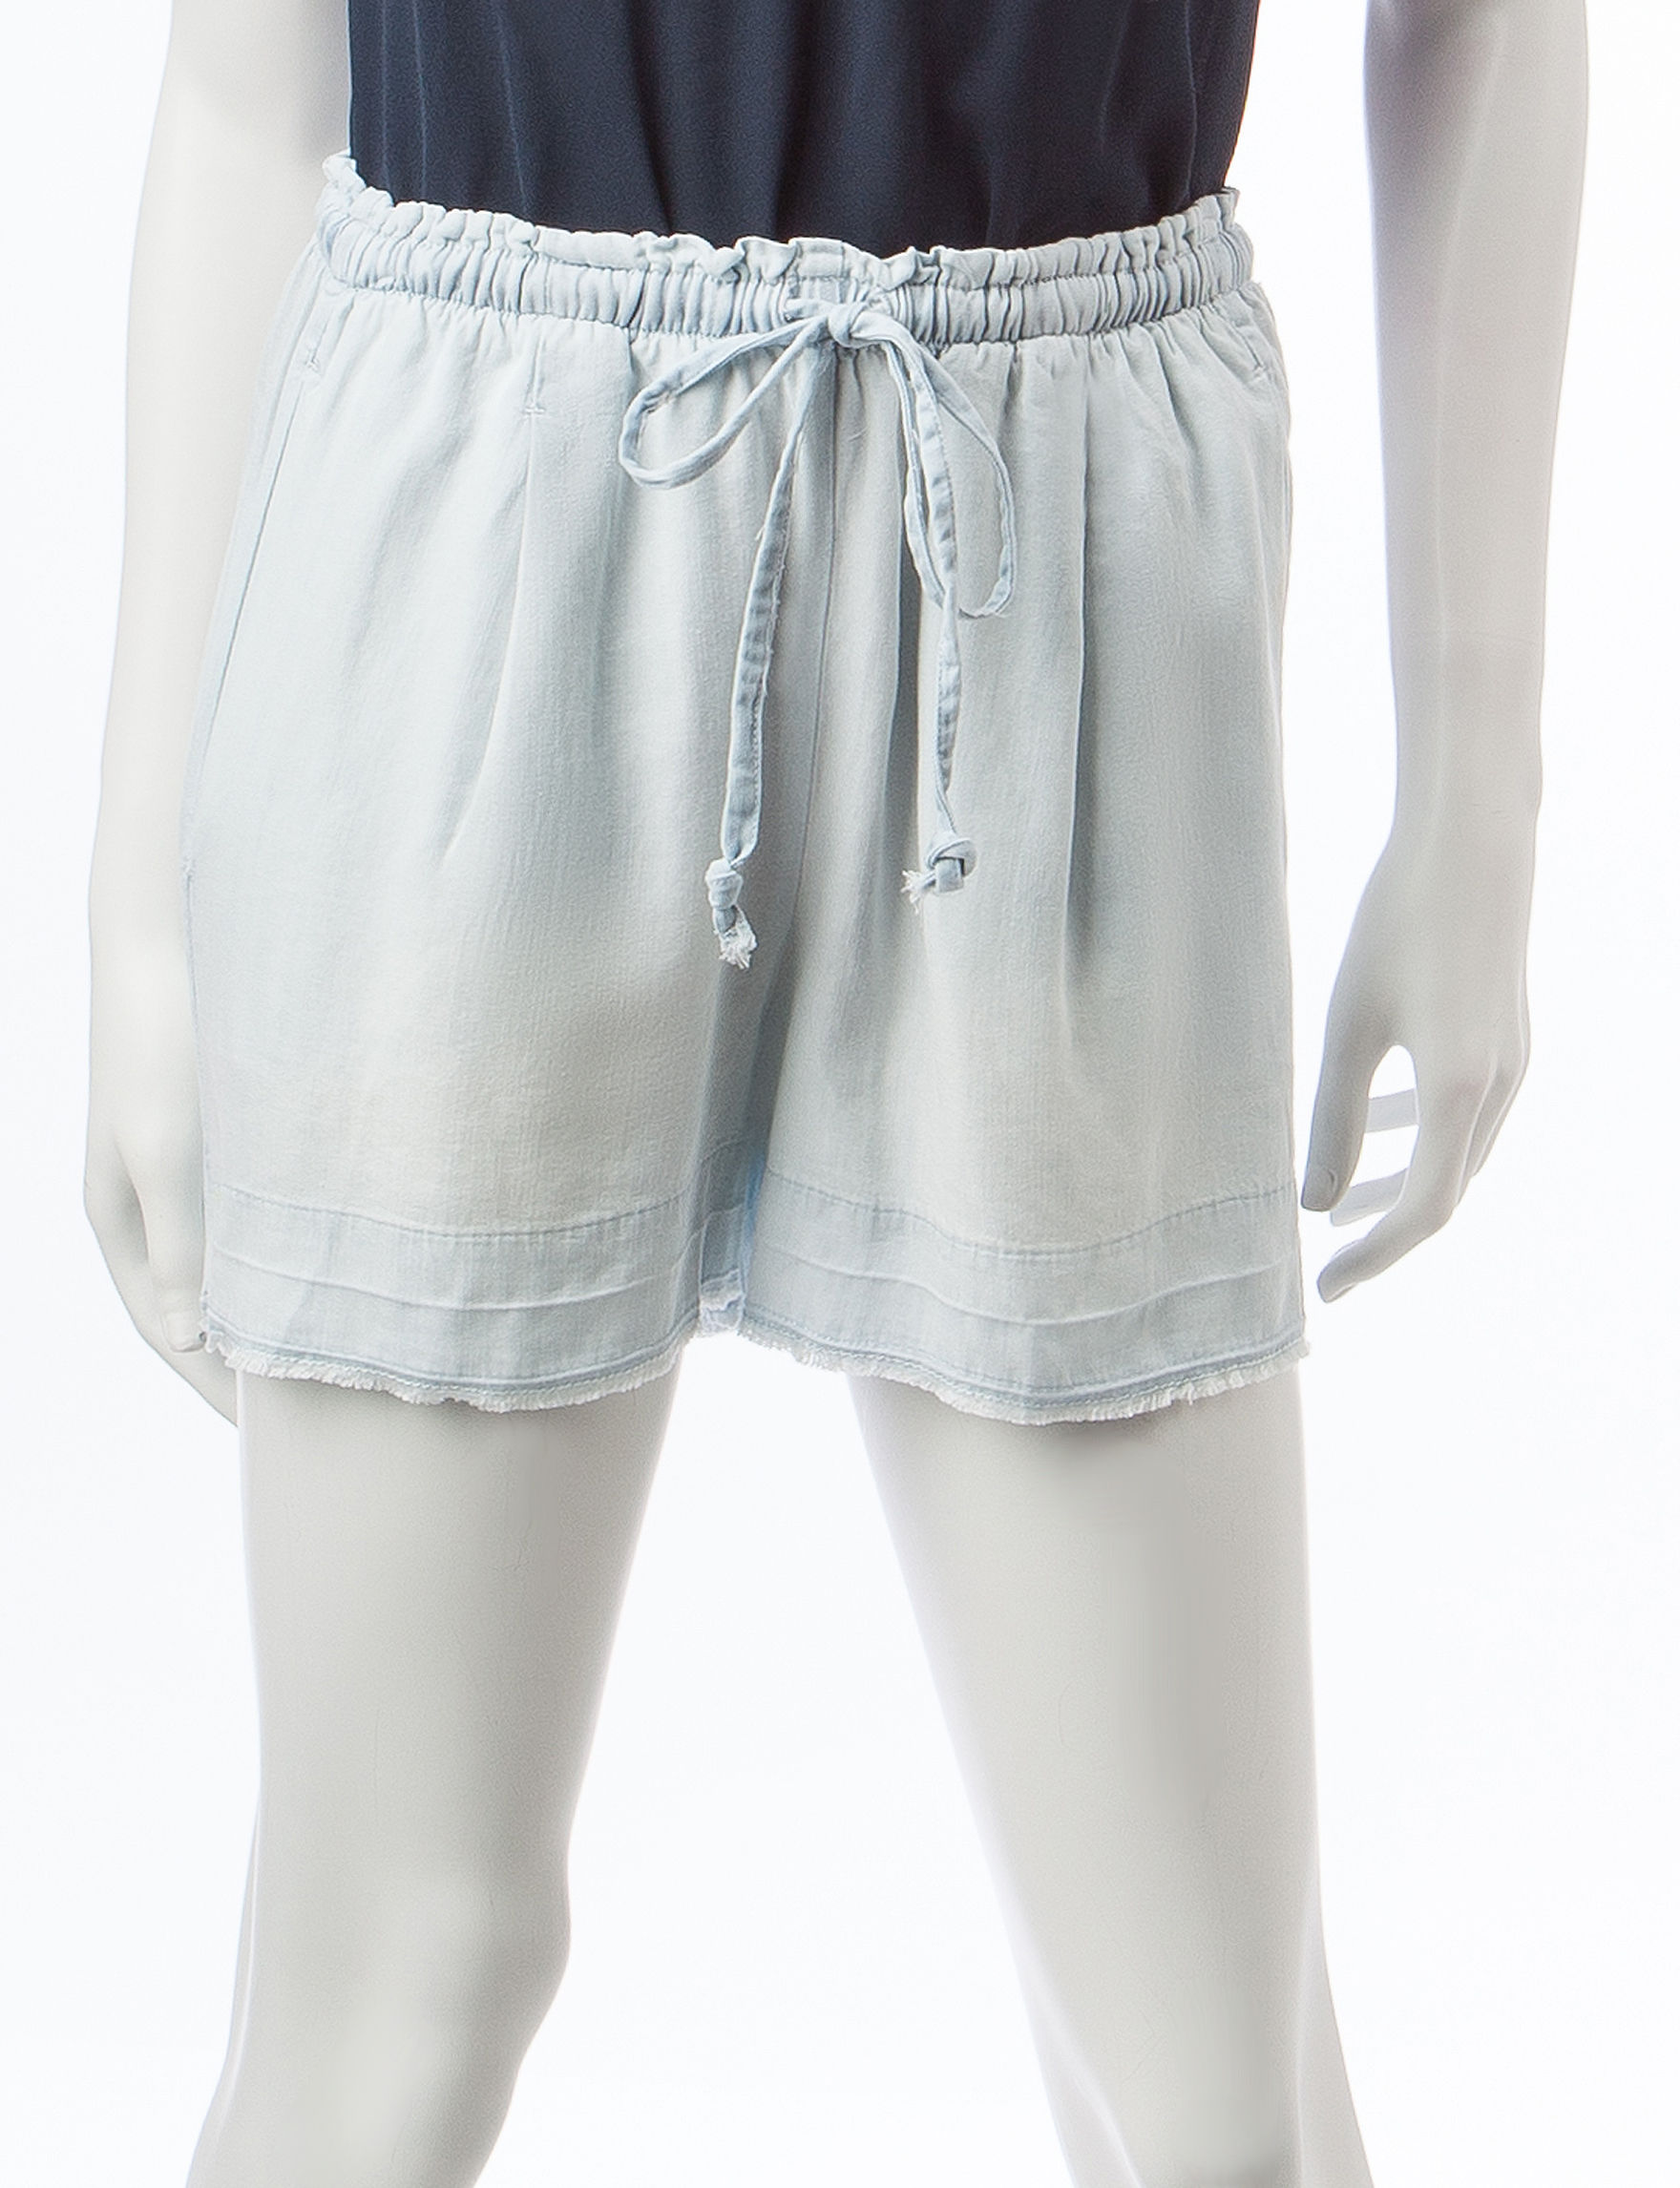 C and J Collection Blue Soft Shorts